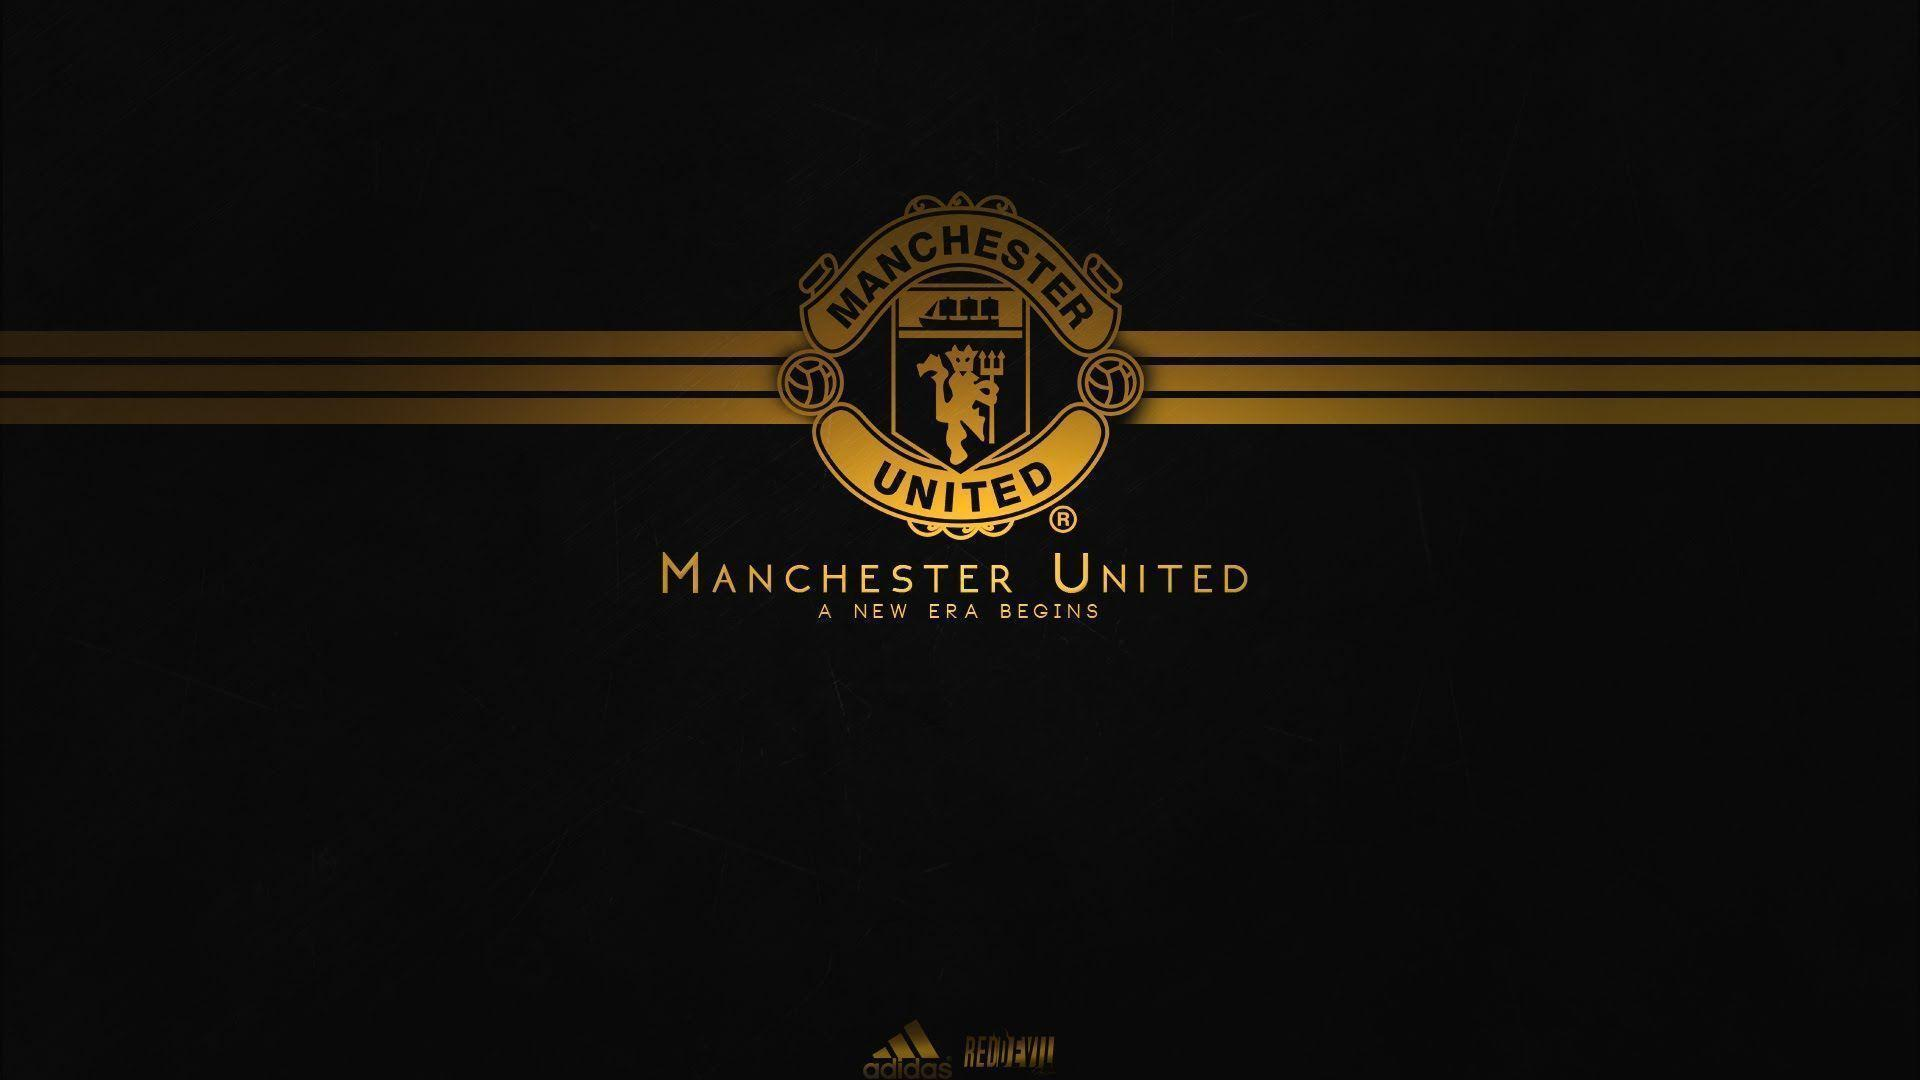 Man United Wallpapers 2017 Wallpaper Cave